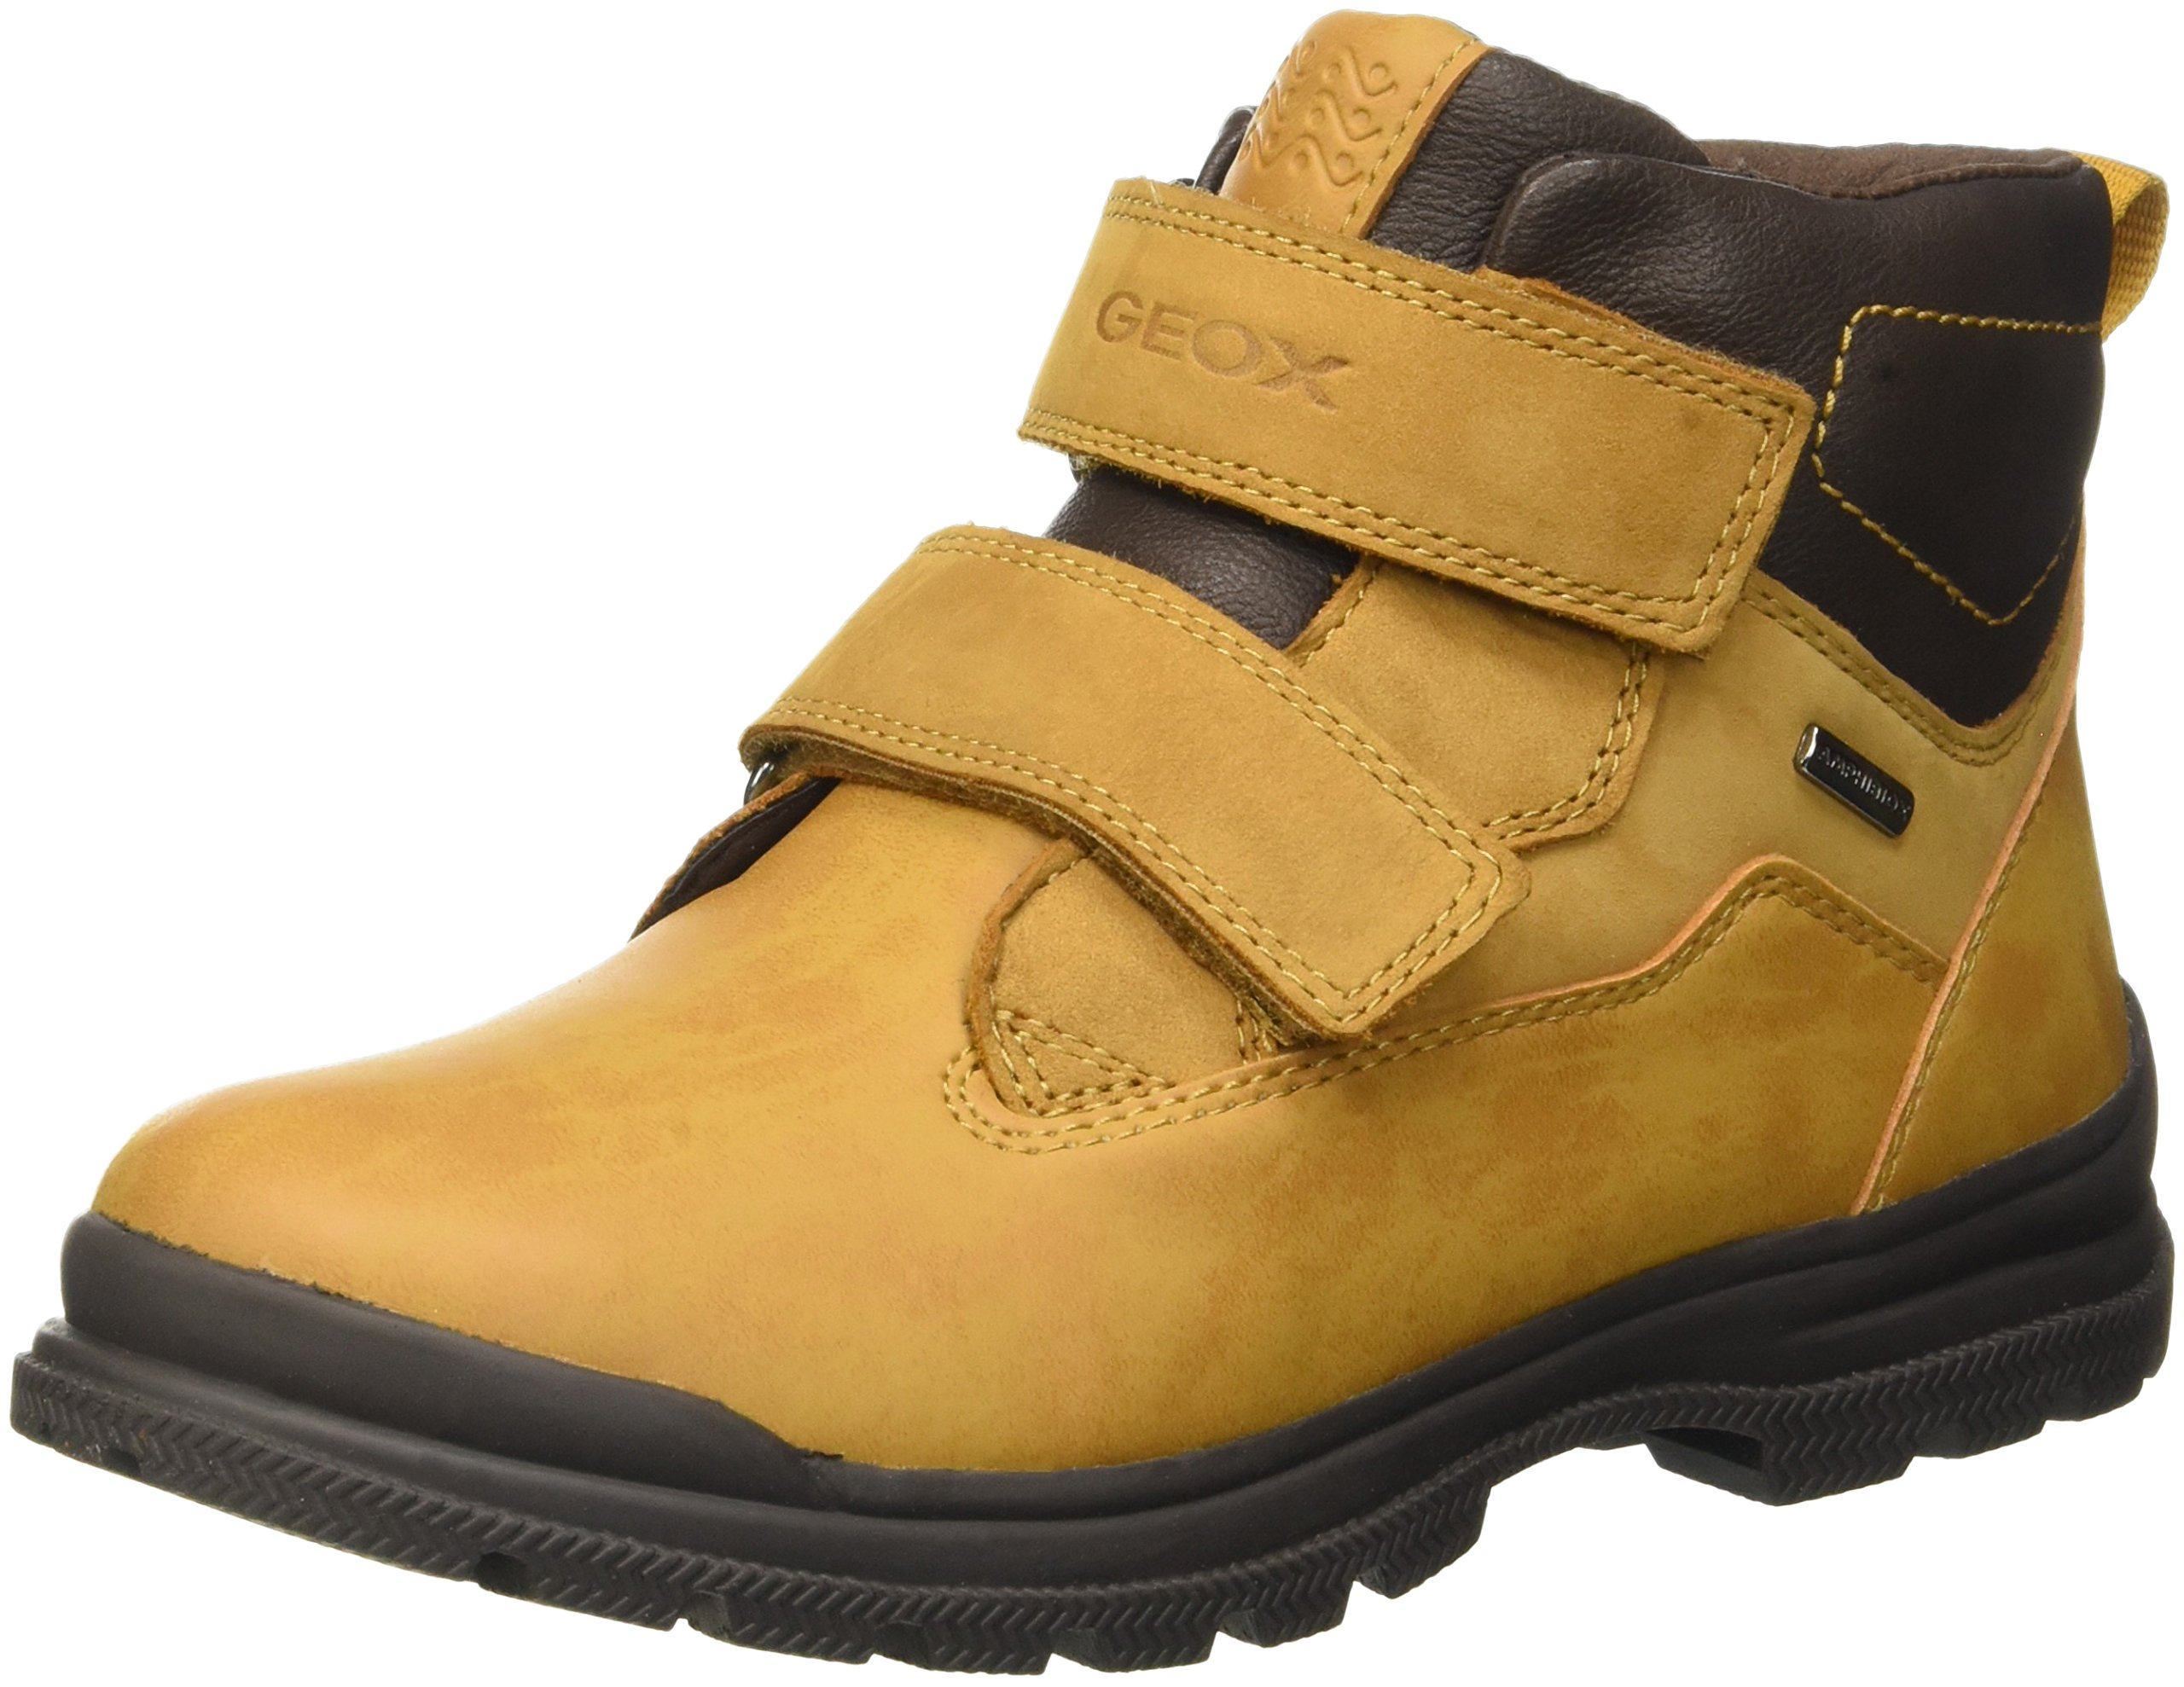 Geox Boys' Jr William B Abx 5-K Rain Boot, Ochre Yellow/Brown, 32 EU(1 M US Little Kid) by Geox